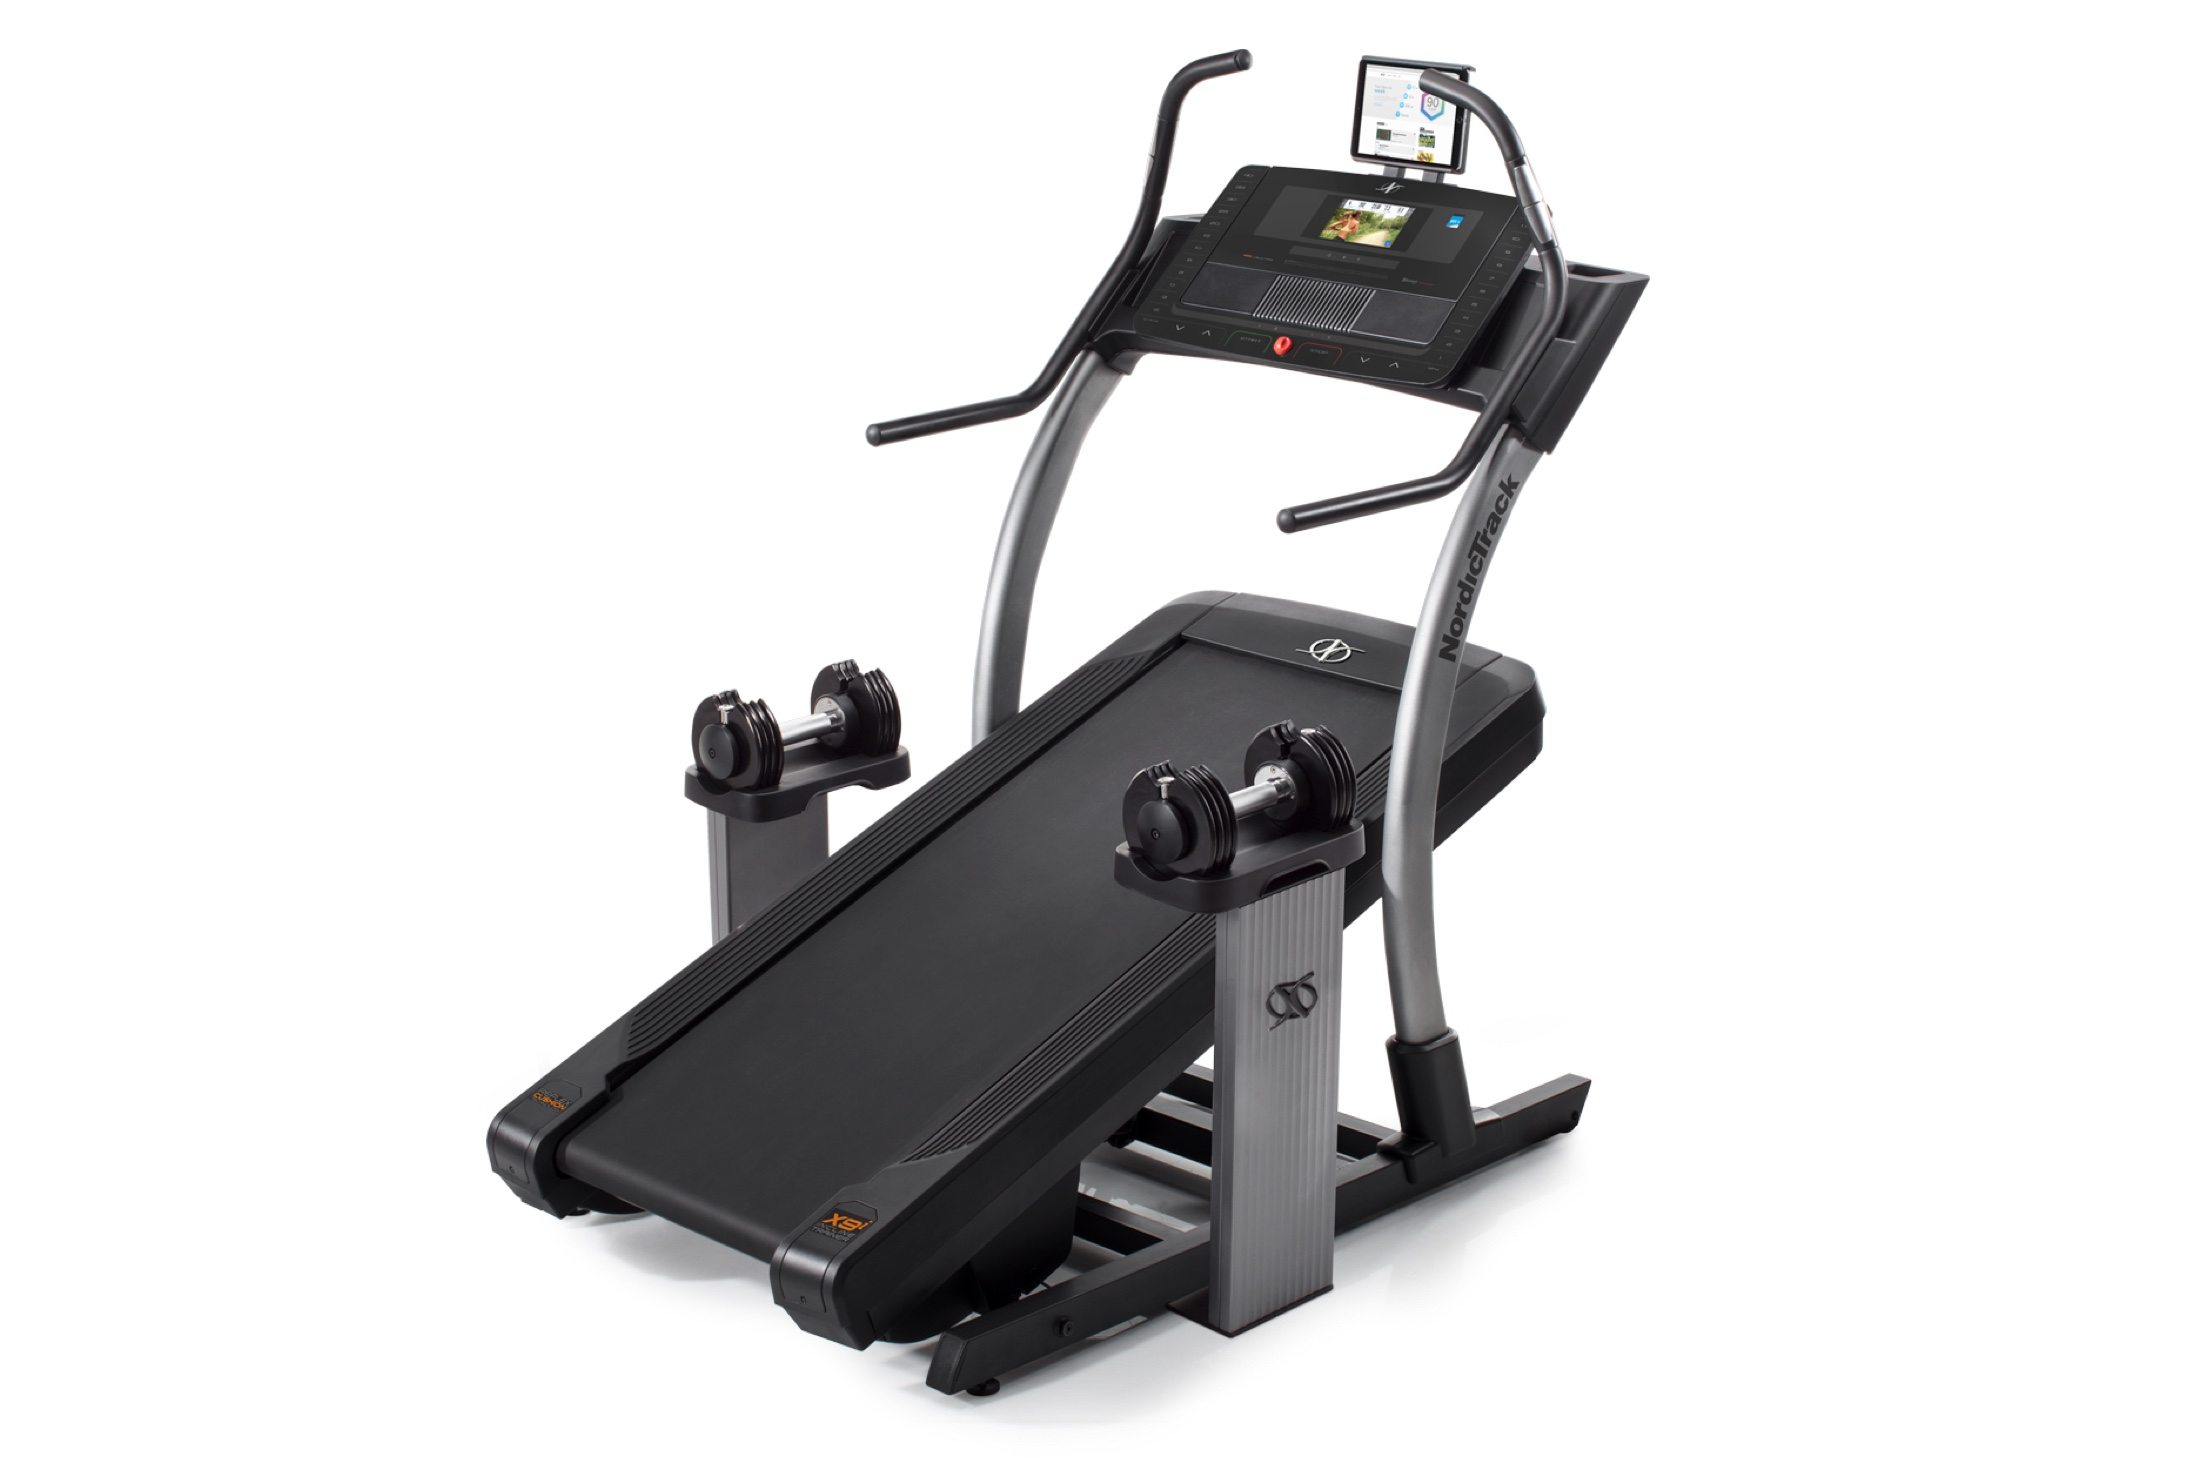 NordicTrack X9i Incline Trainer gallery image 1